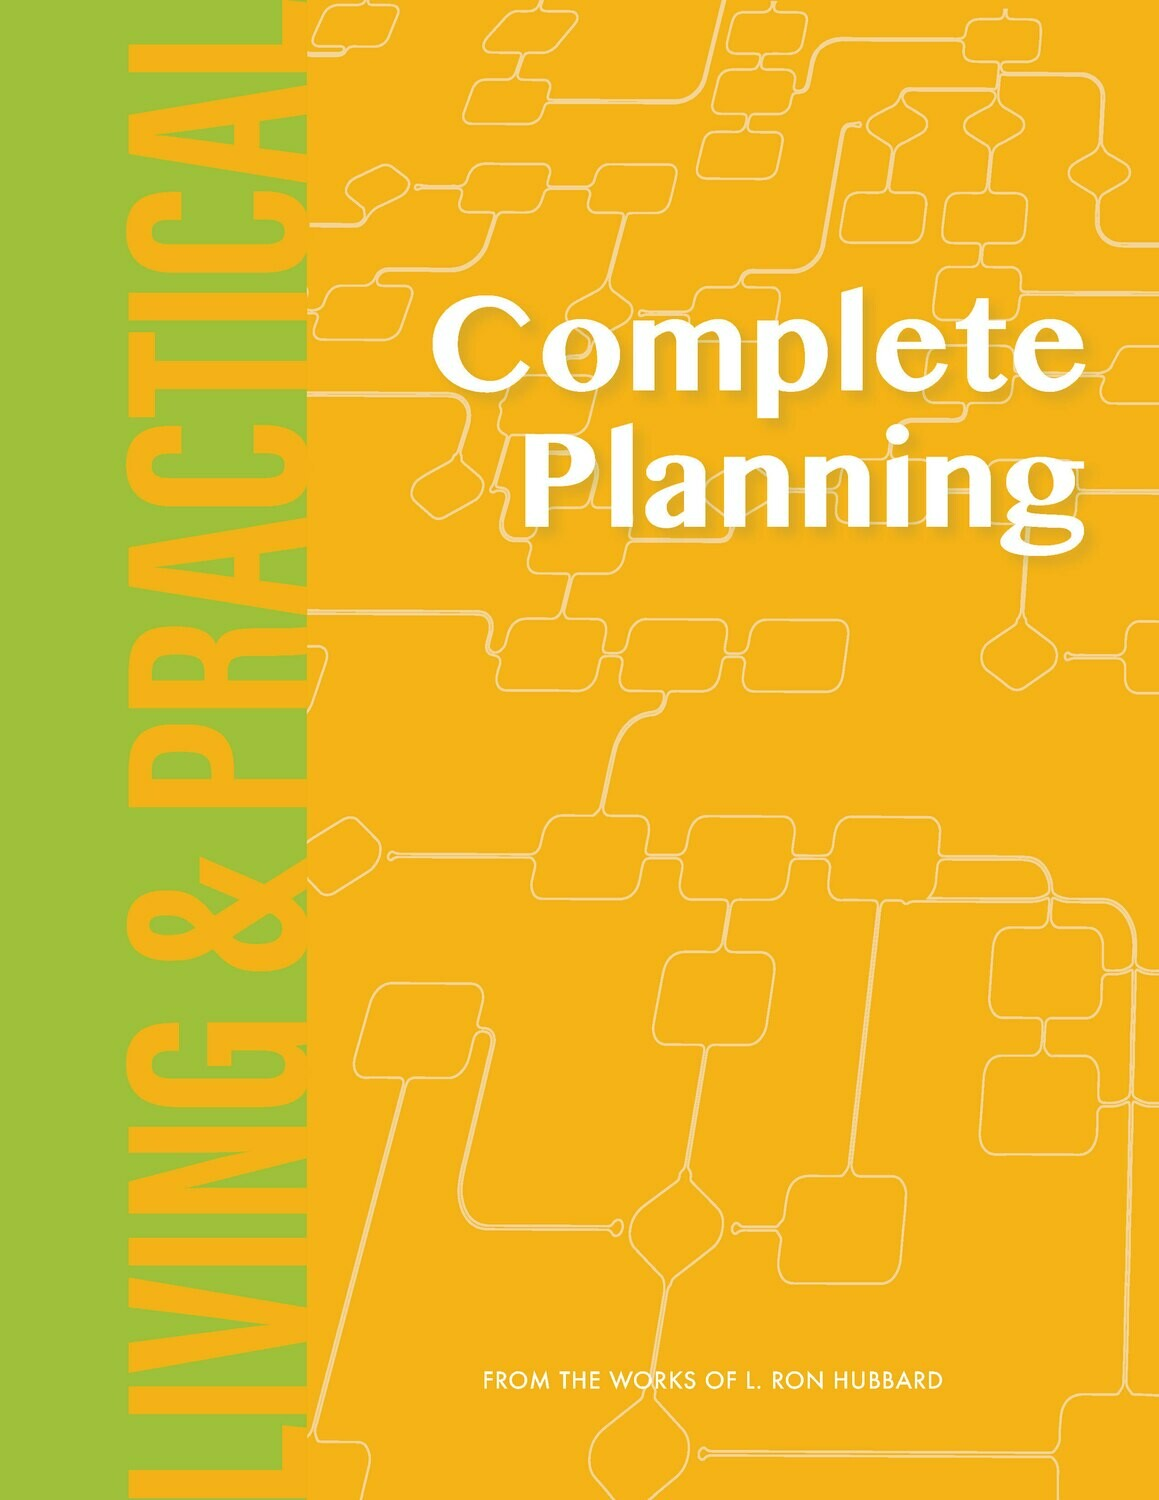 Complete Planning